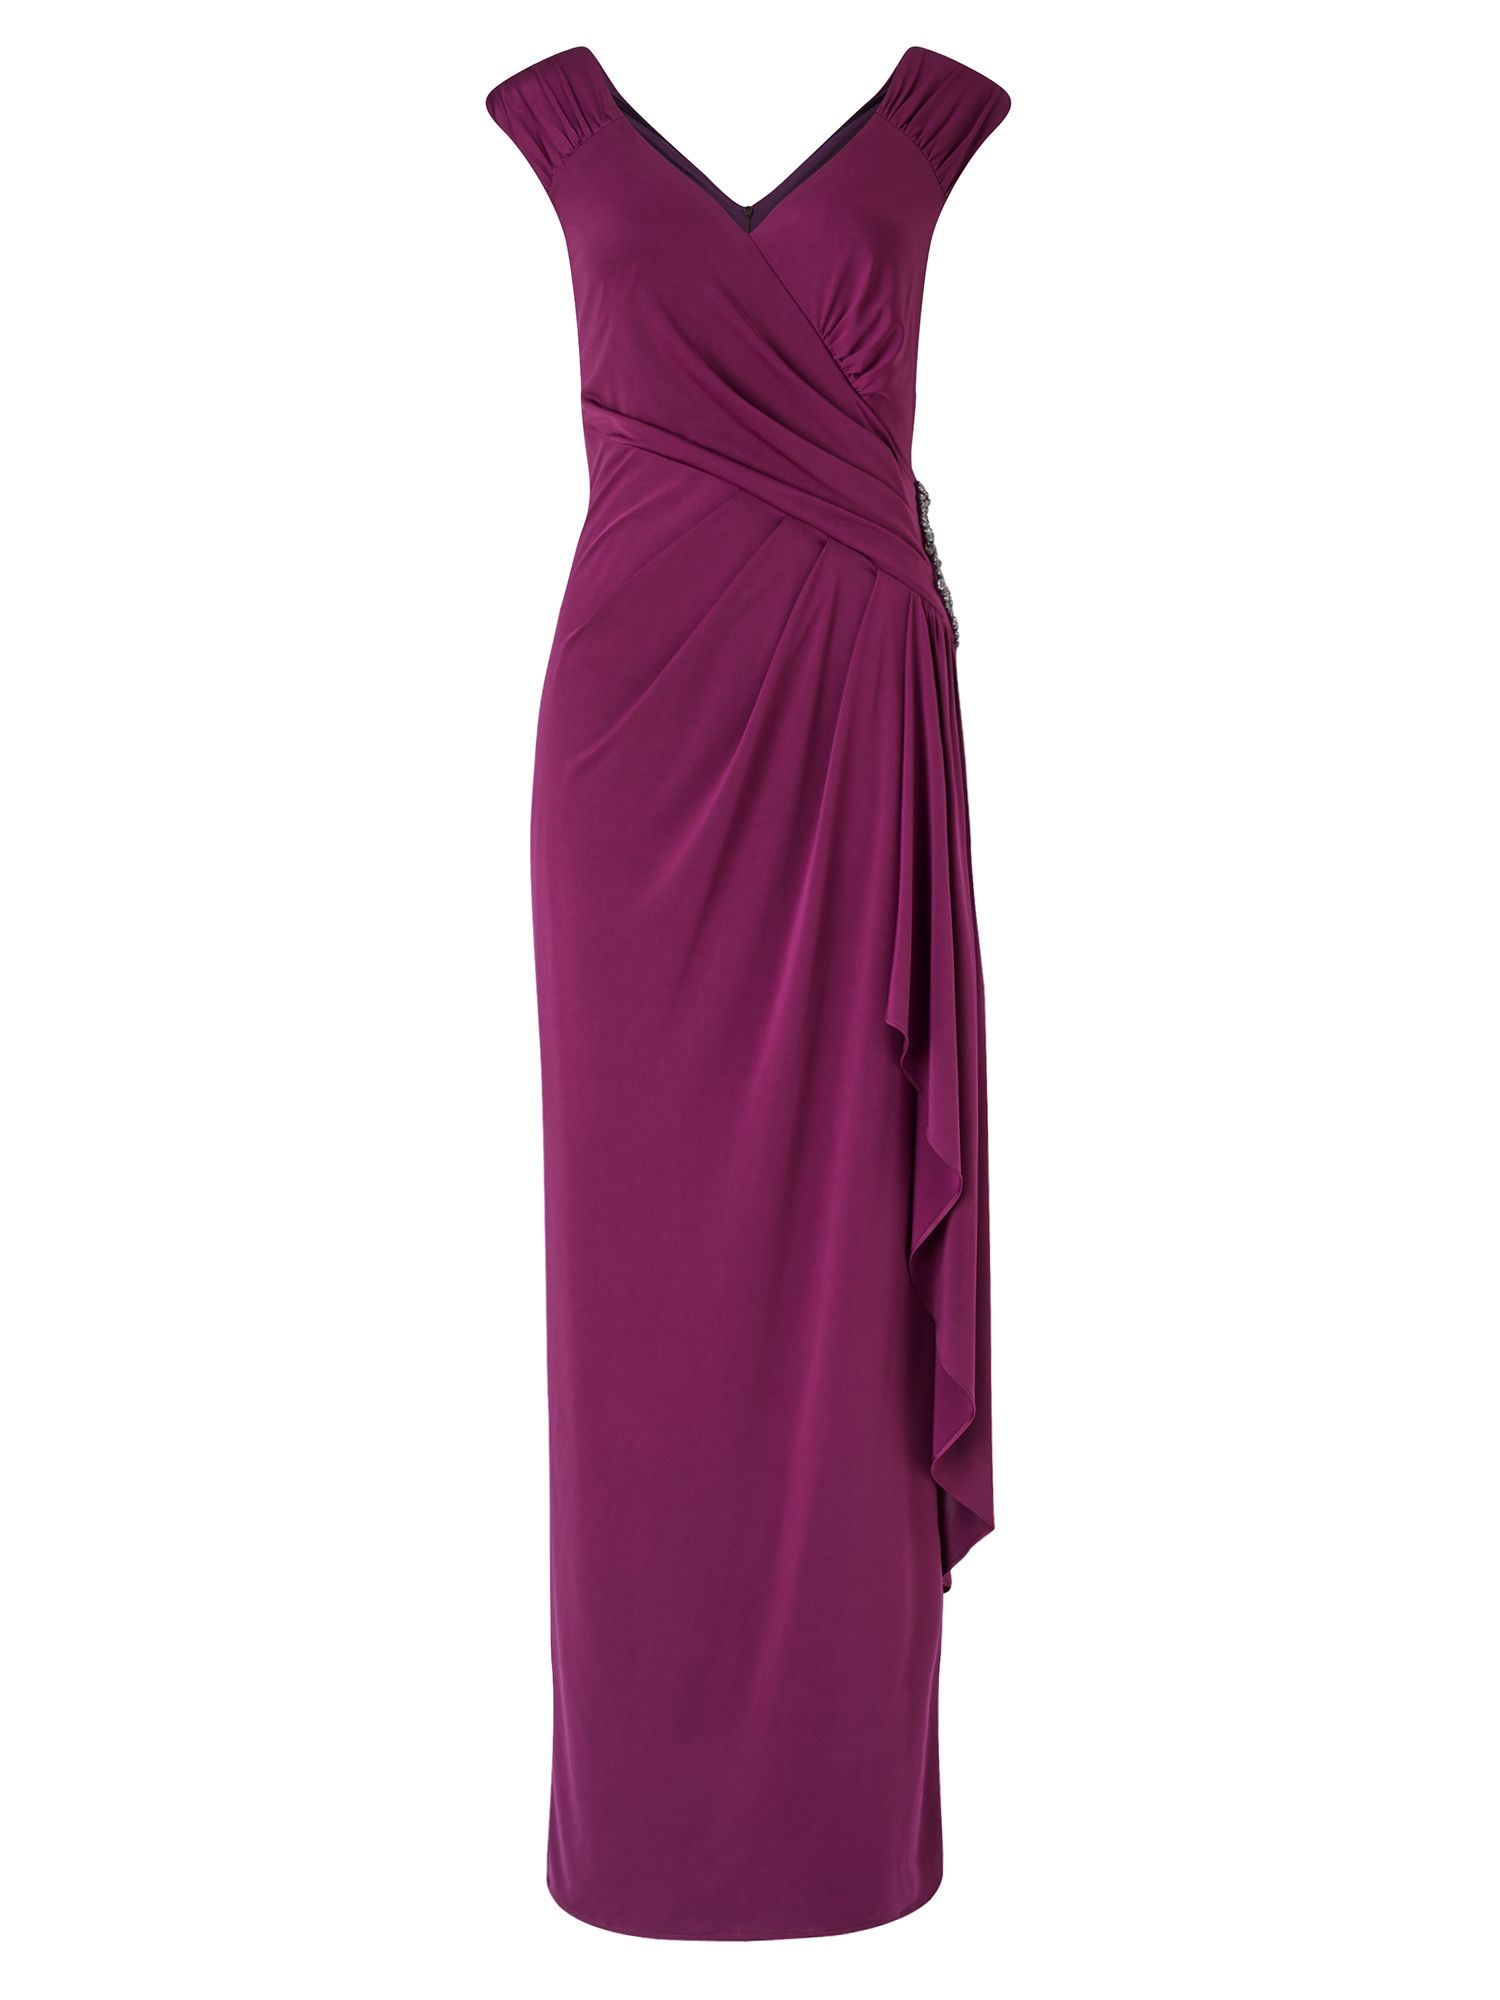 Ariella Ray Gathered Jersey Dress, Wine